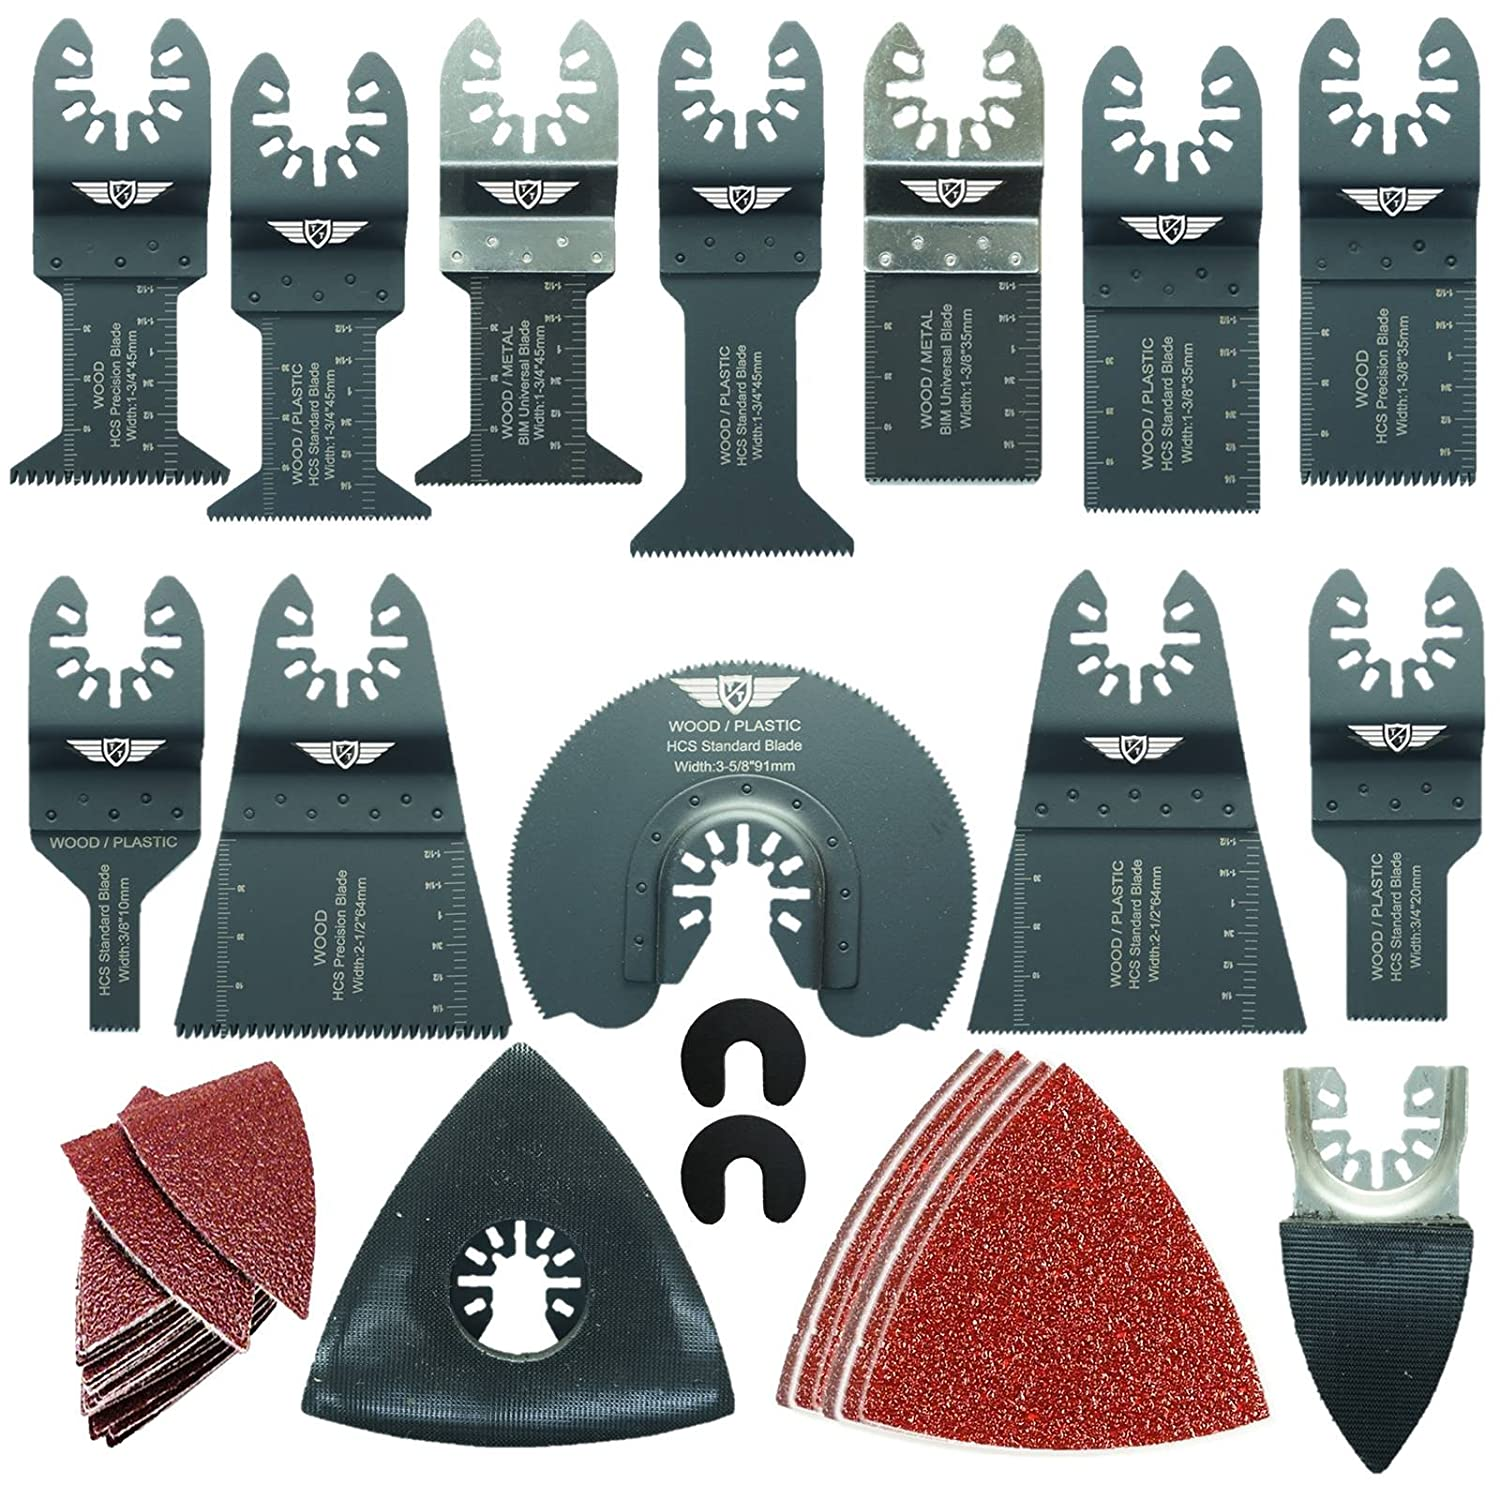 56 x TopsTools DRFAK56SK Fast Fit Mix Blade Kit for Dremel Multimax Multi-Max MM20 MM30 MM40 and MM45 Multitool Multi Tool Accessories